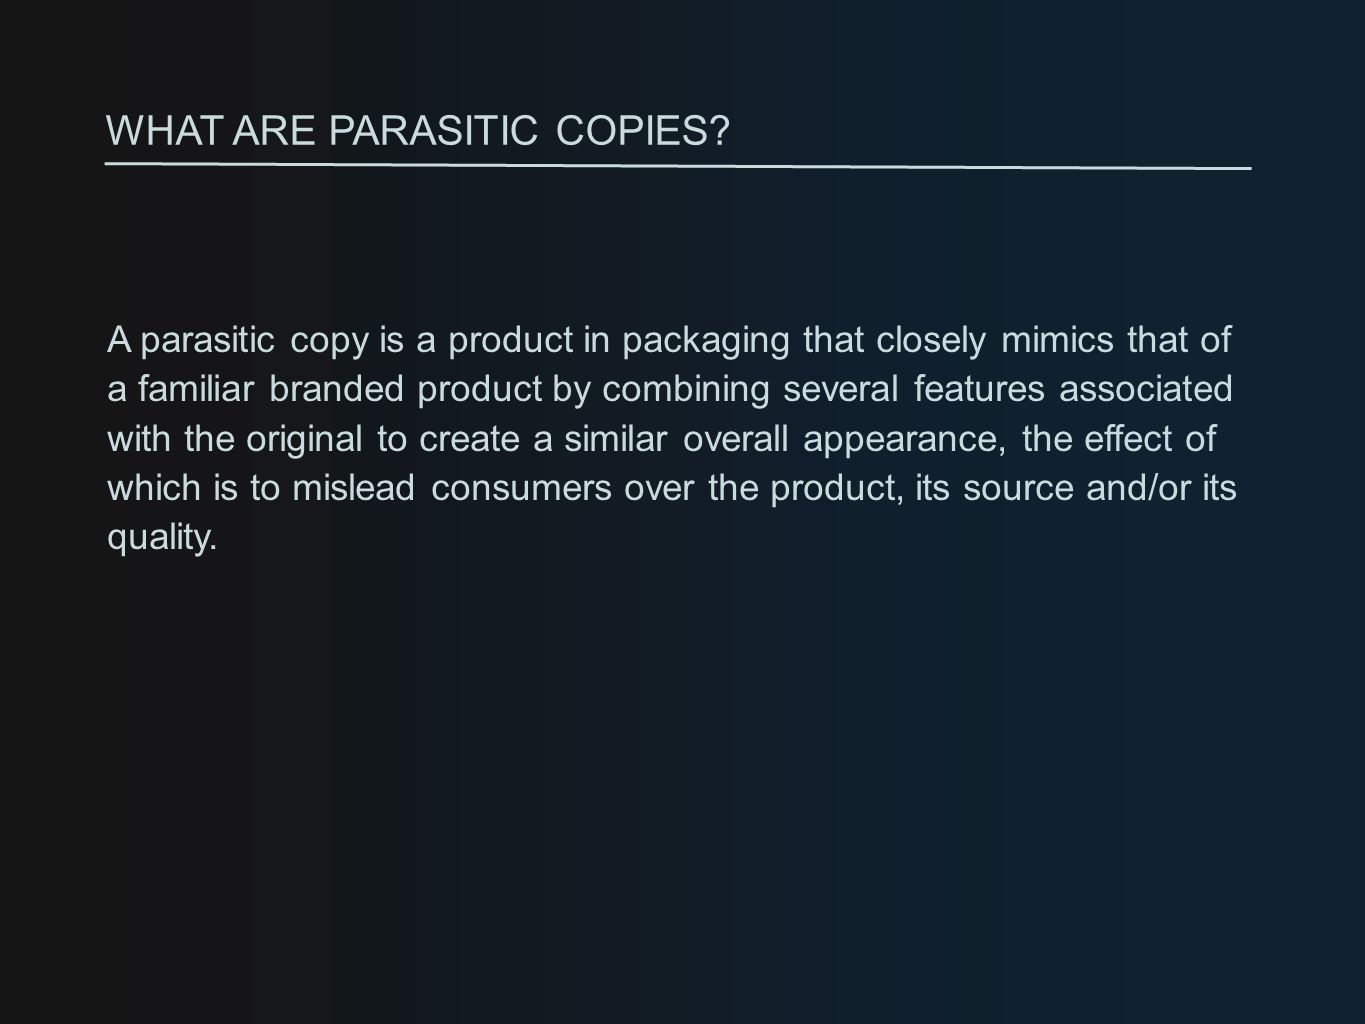 A parasitic copy is a product in packaging that closely mimics that of a familiar branded product by combining several features associated with the original to create a similar overall appearance, the effect of which is to mislead consumers over the product, its source and/or its quality.